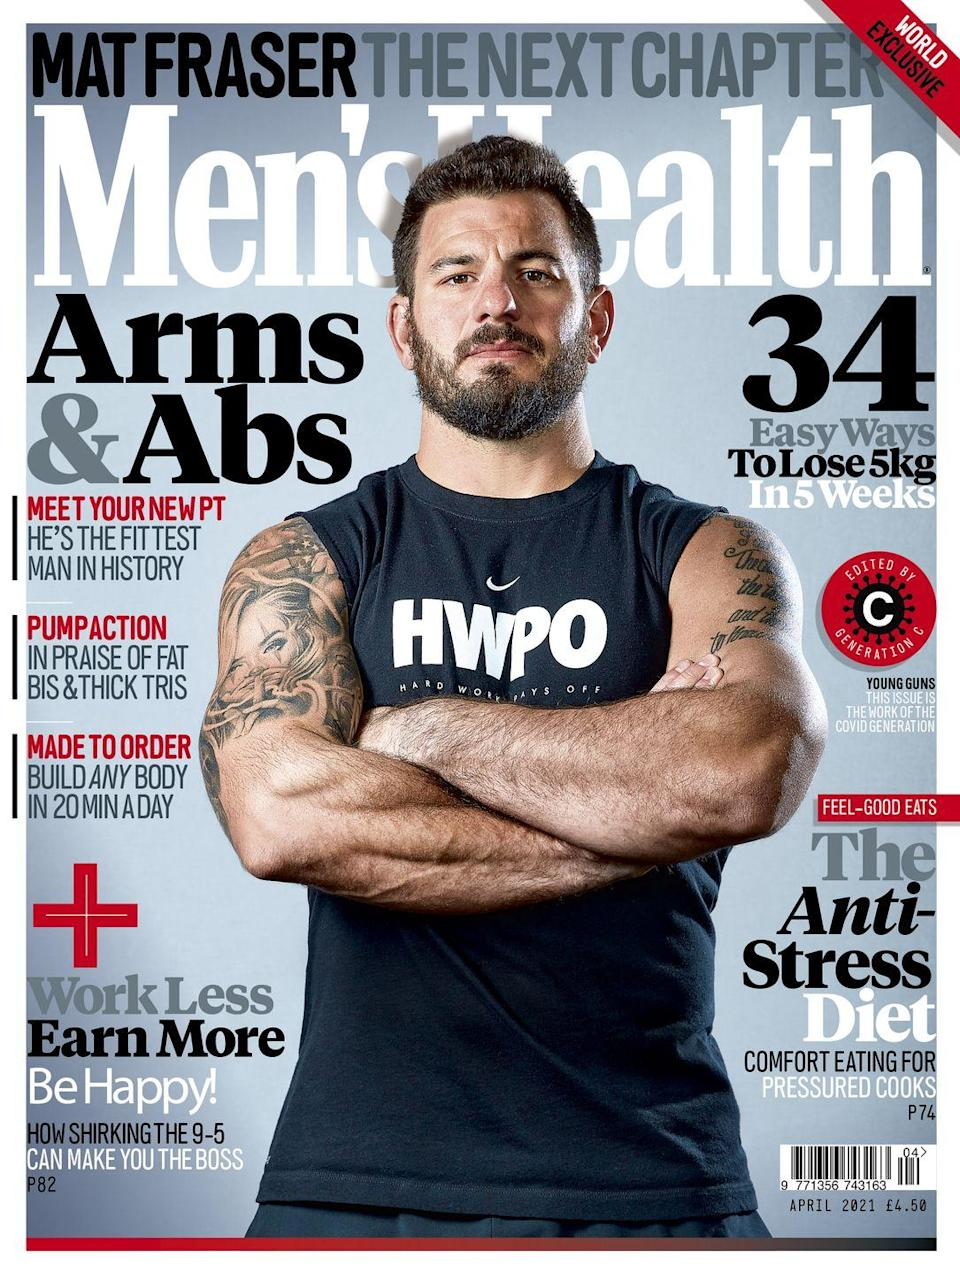 "<p>For the full interview with Mat Fraser, pick up the April 2021 issue of Men's Health UK, or <strong><a href=""https://www.hearstmagazines.co.uk/mens-health-magazine-subscription"" rel=""nofollow noopener"" target=""_blank"" data-ylk=""slk:subscribe here"" class=""link rapid-noclick-resp"">subscribe here</a></strong> and enjoy Men's Health magazine delivered straight to your door every month with Free UK delivery. Buy direct from the publisher for the lowest price and never miss an issue!<br> <br><a class=""link rapid-noclick-resp"" href=""https://go.redirectingat.com?id=127X1599956&url=https%3A%2F%2Fwww.hearstmagazines.co.uk%2Fmh%2Fmens-health-magazine-subscription-website&sref=https%3A%2F%2Fwww.menshealth.com%2Fuk%2Fworkouts%2Fg35860554%2Fmat-fraser-workout-crossfit-hwpo%2F"" rel=""nofollow noopener"" target=""_blank"" data-ylk=""slk:SUBSCRIBE""><strong>SUBSCRIBE</strong></a> <br><br></p>"